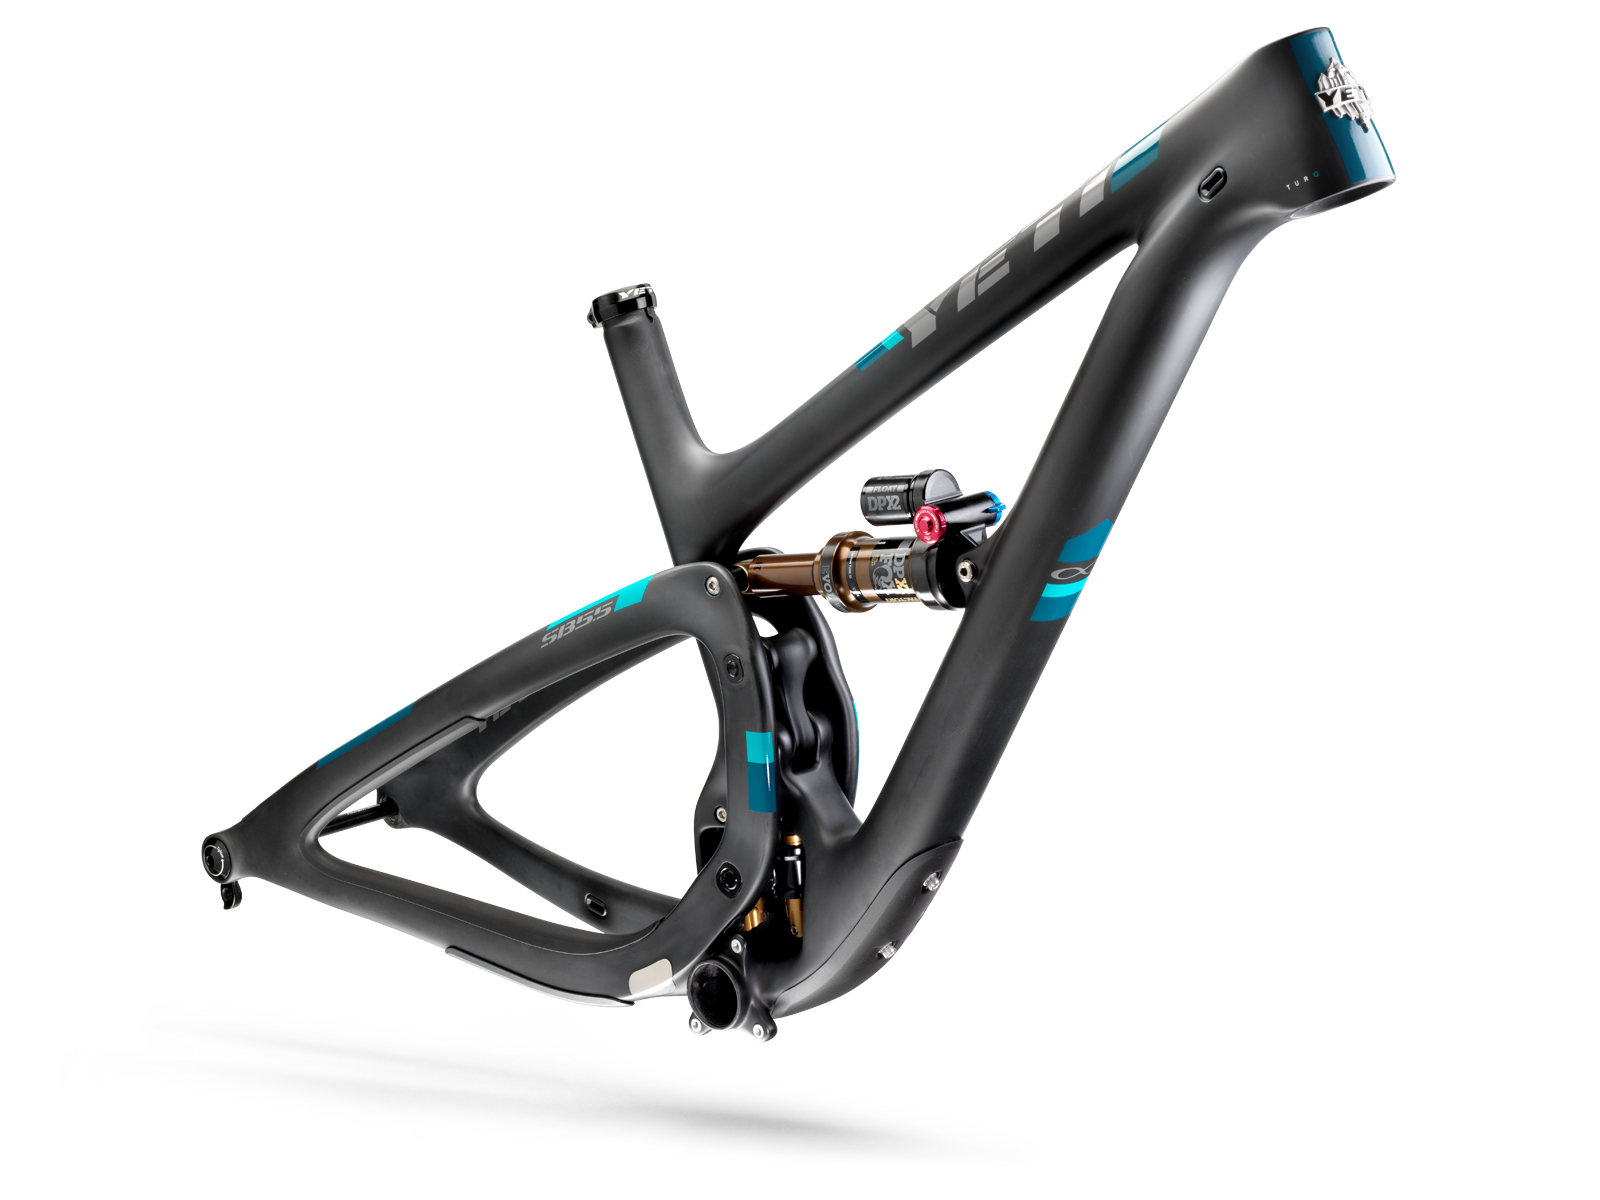 16002018_YetiCycles_Frame_SB55_TS_Black_02